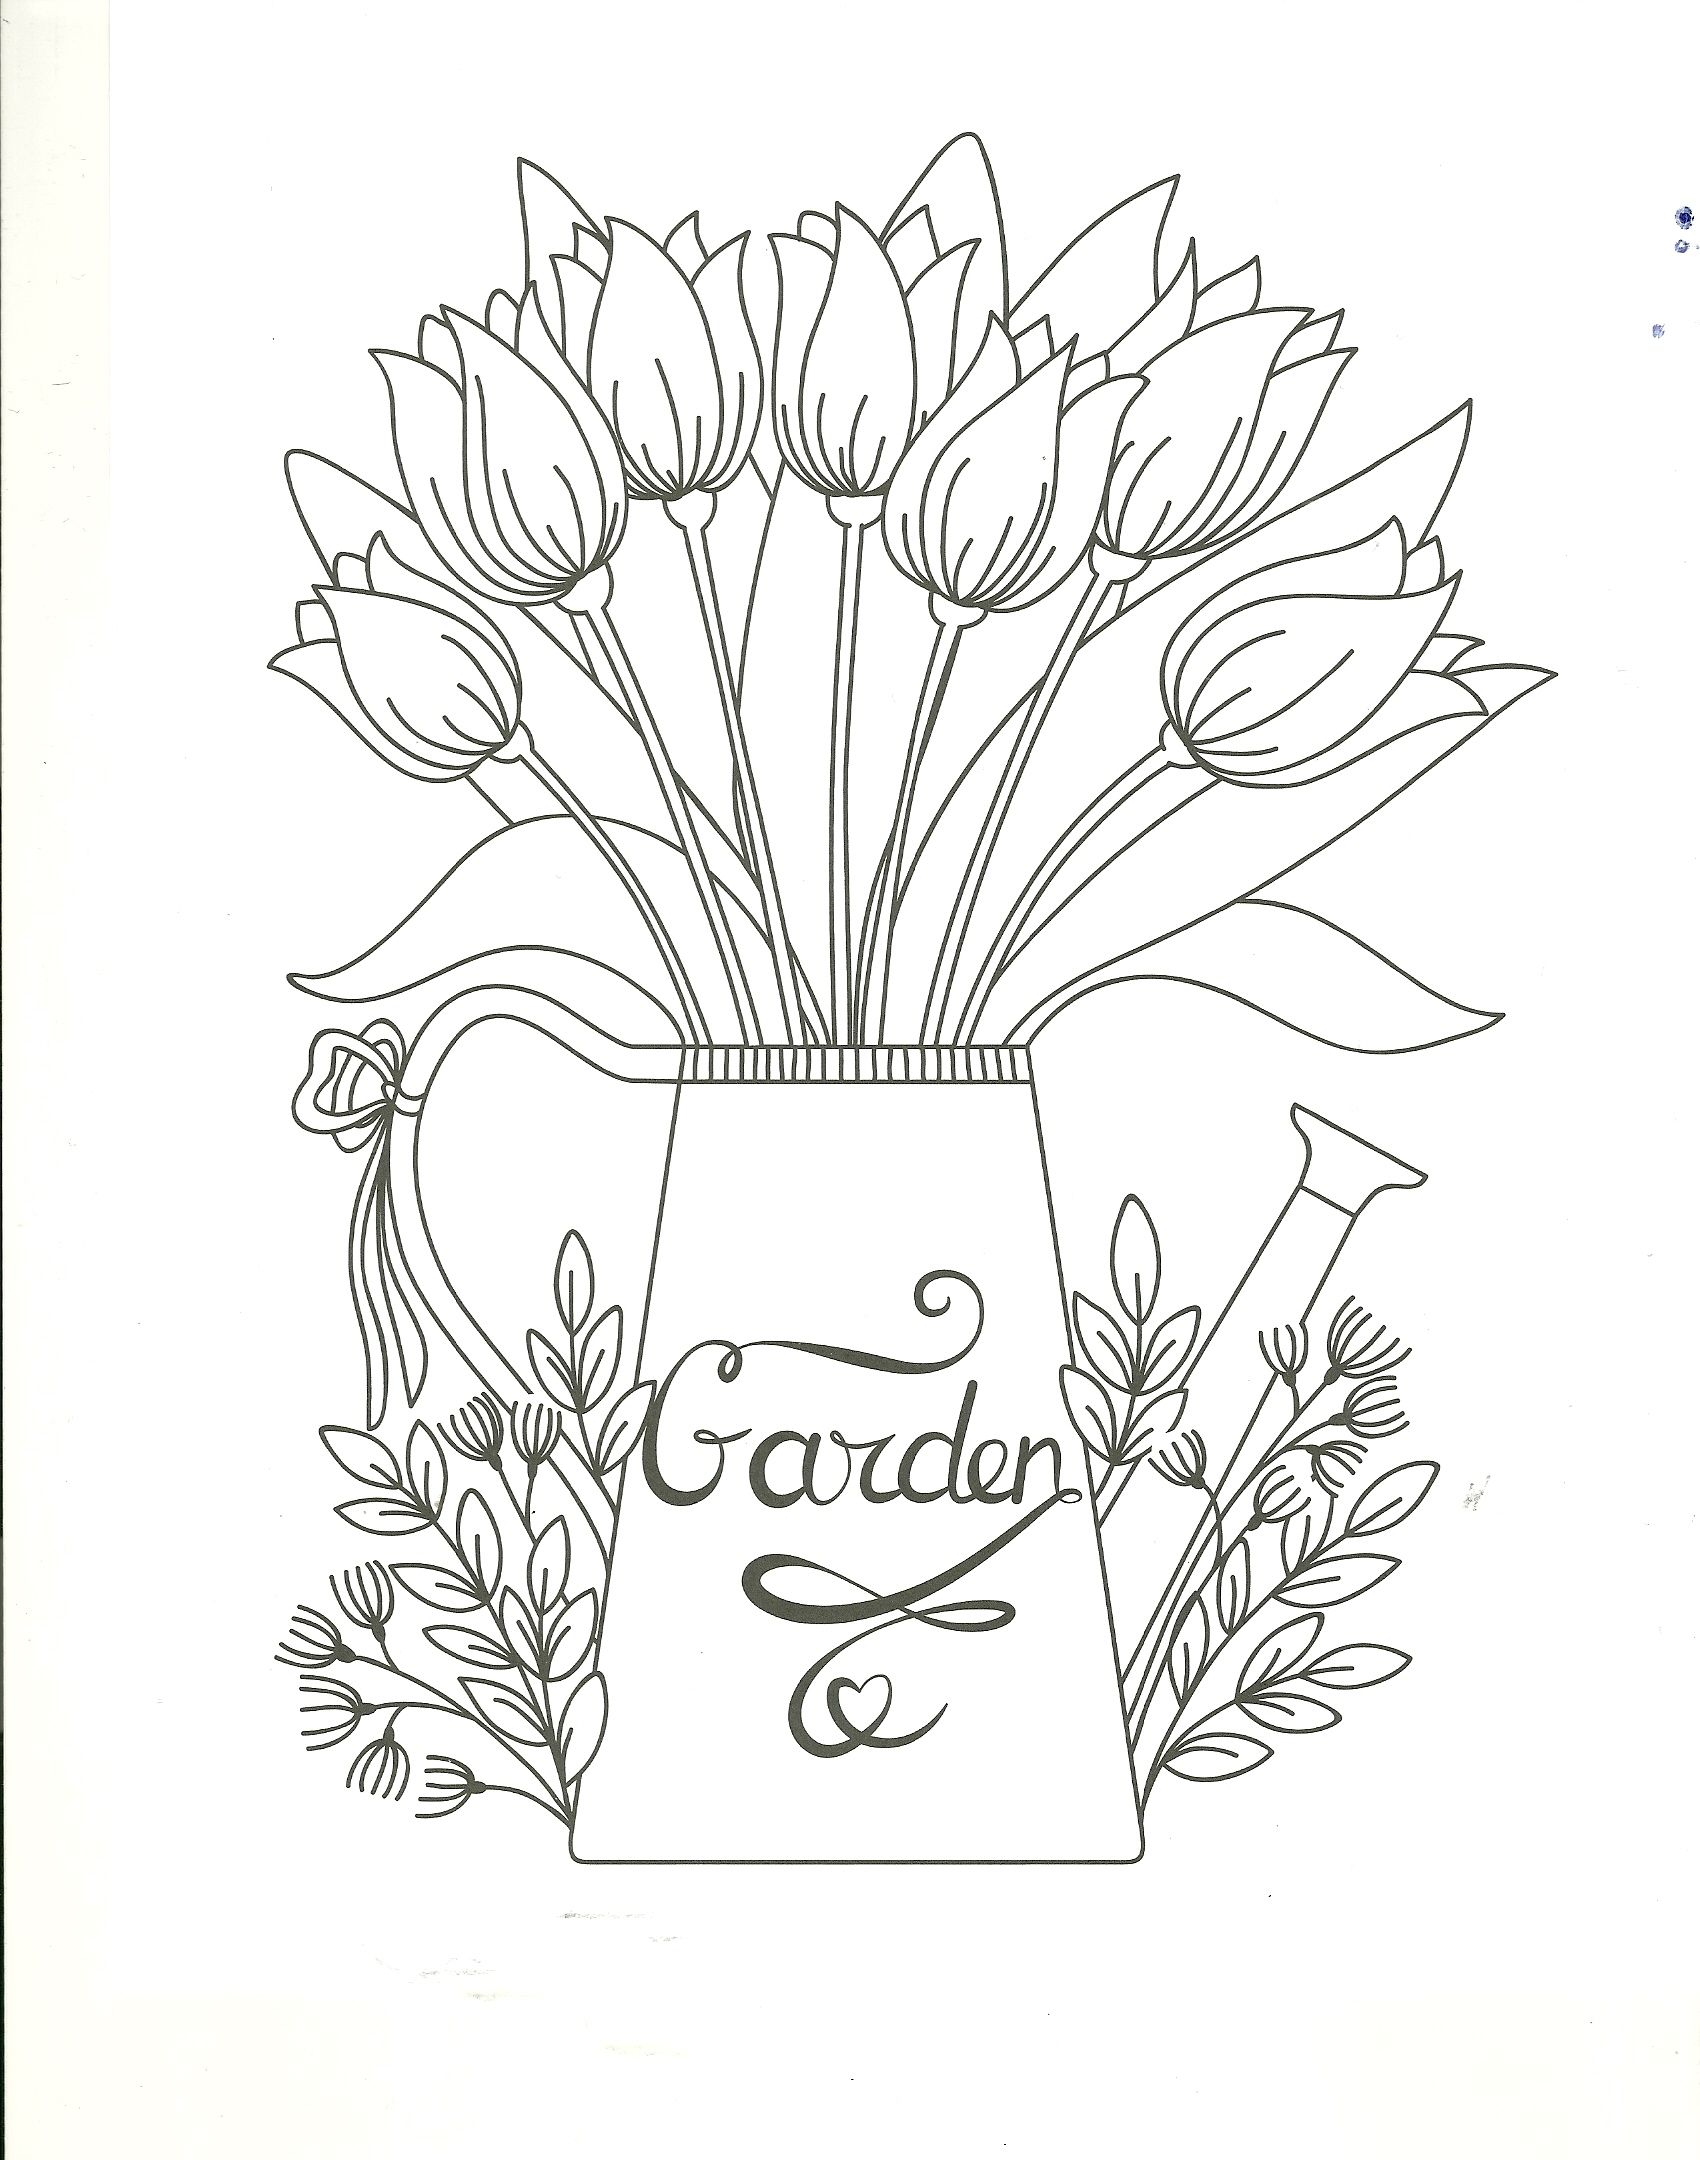 Garden Watering Can Floral Coloring Page Cool Coloring Pages Coloring Pages Embroidery Patterns